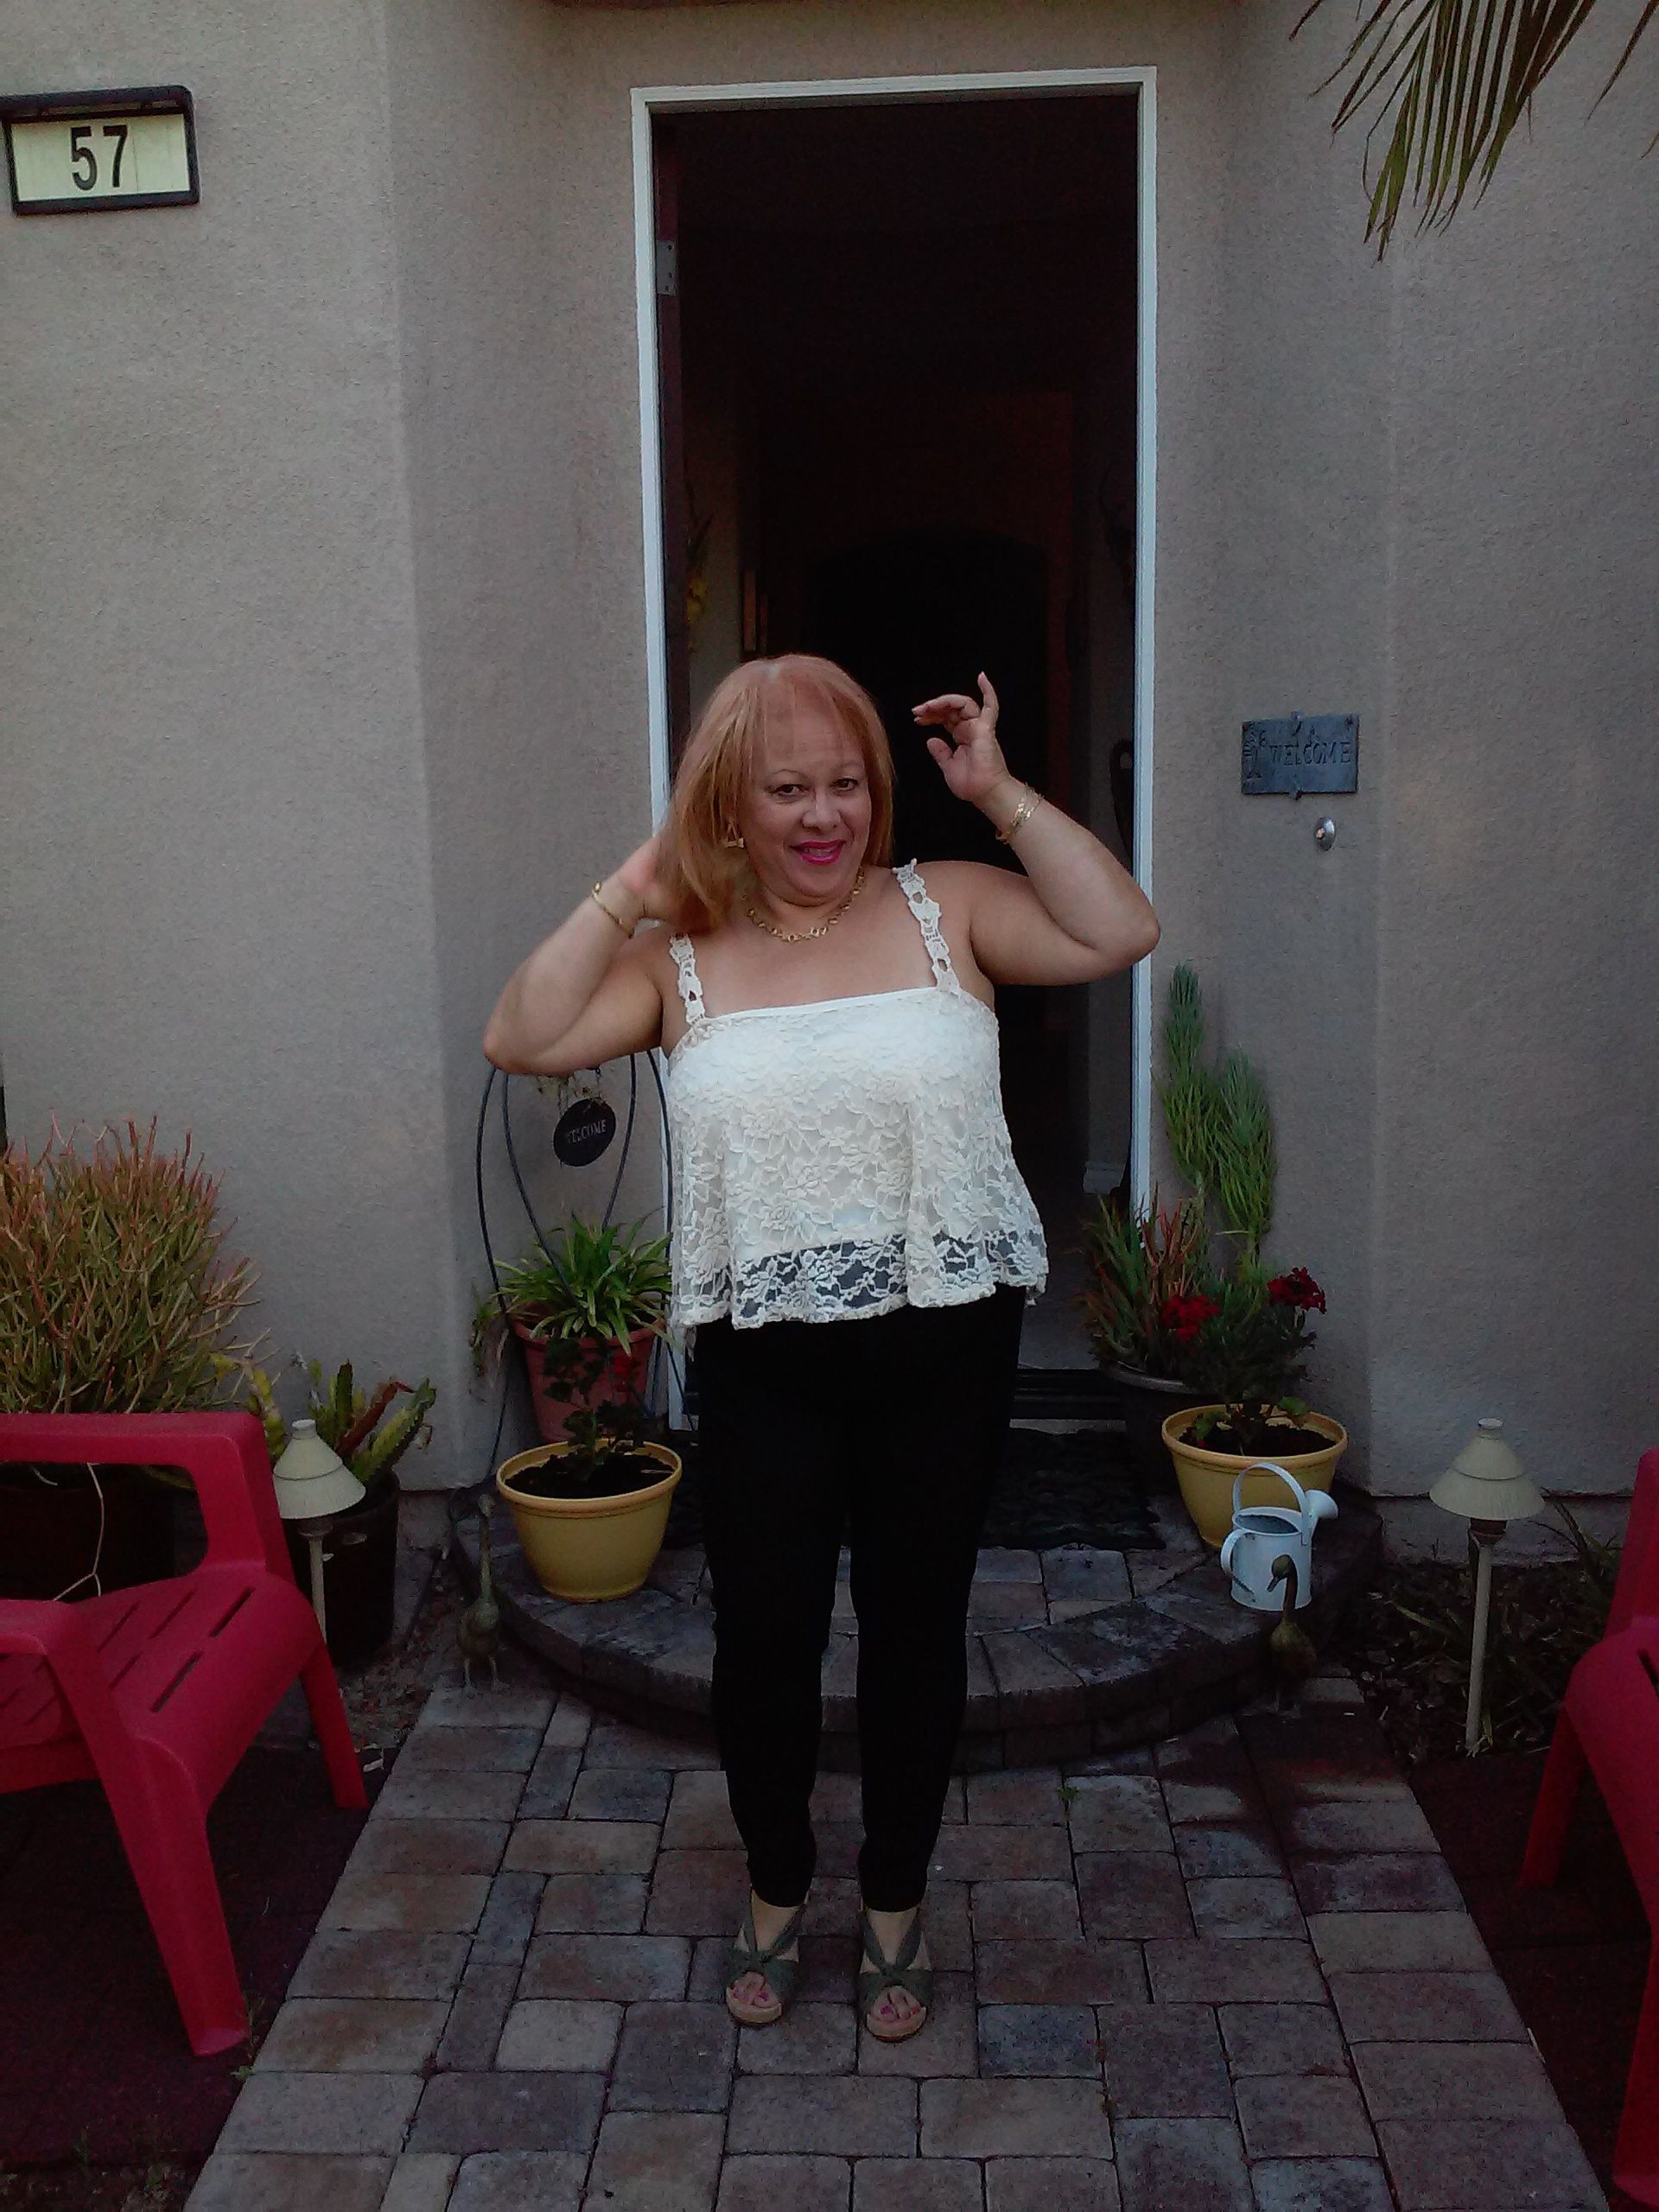 newport beach single women over 50 Newport beach singles  in fact,  chinese women and single men communicate with each other if they like each other newport beach singles.